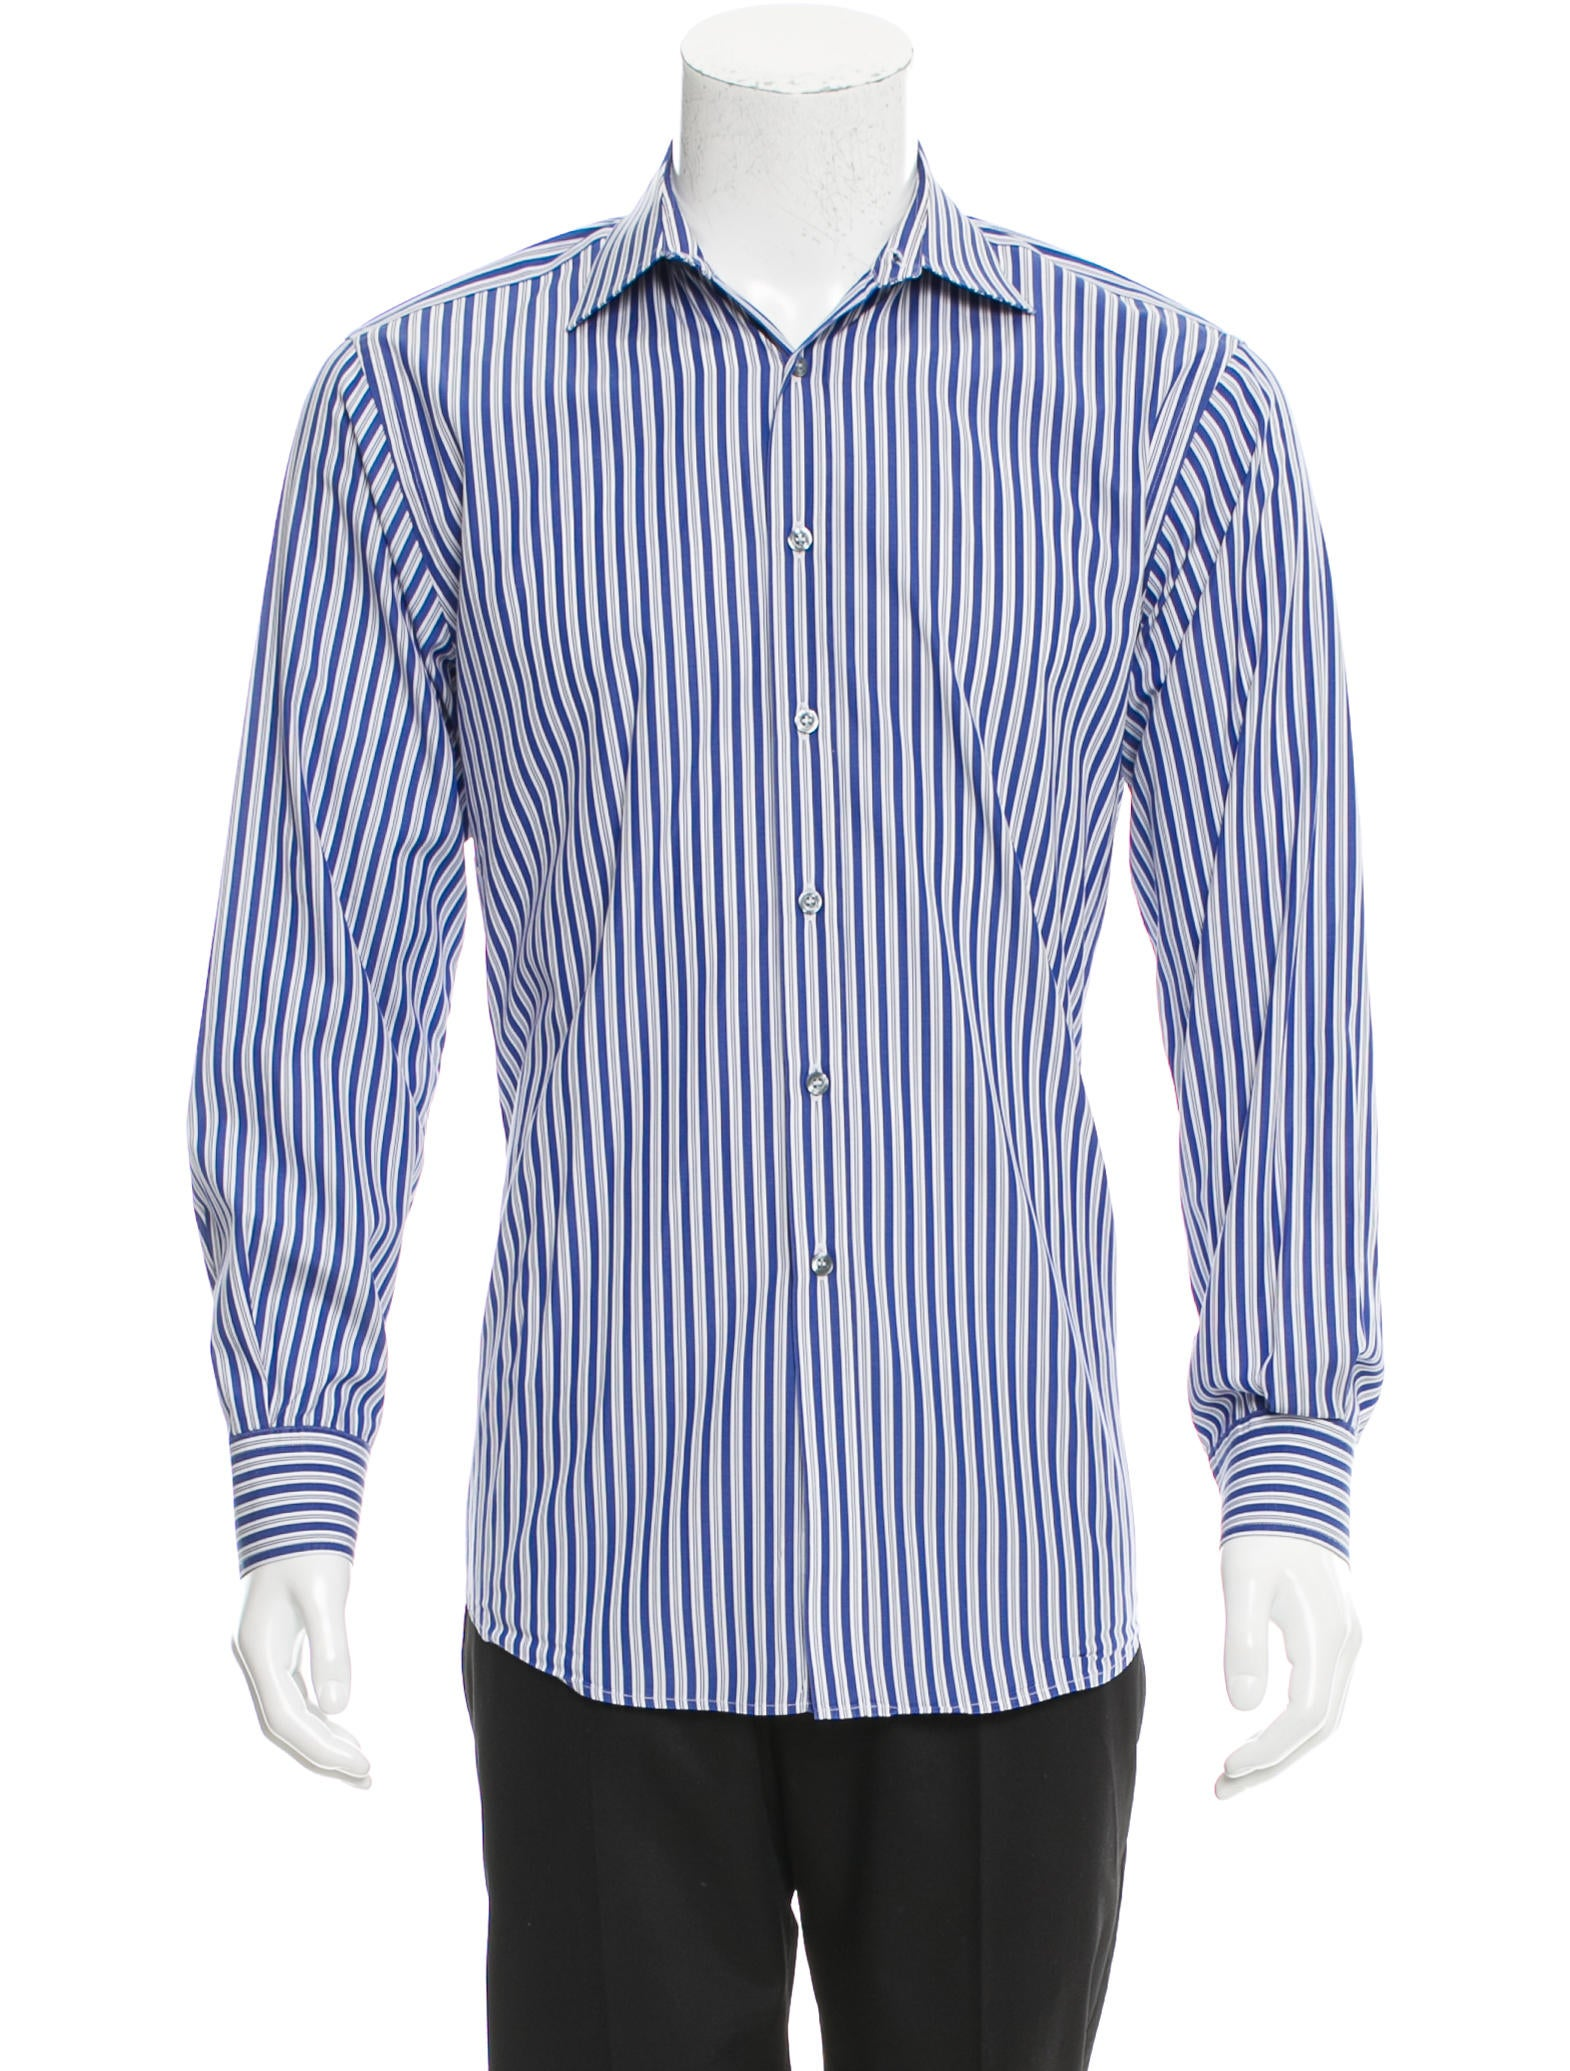 Paul Smith Striped Button Up Shirt Clothing Wps23485